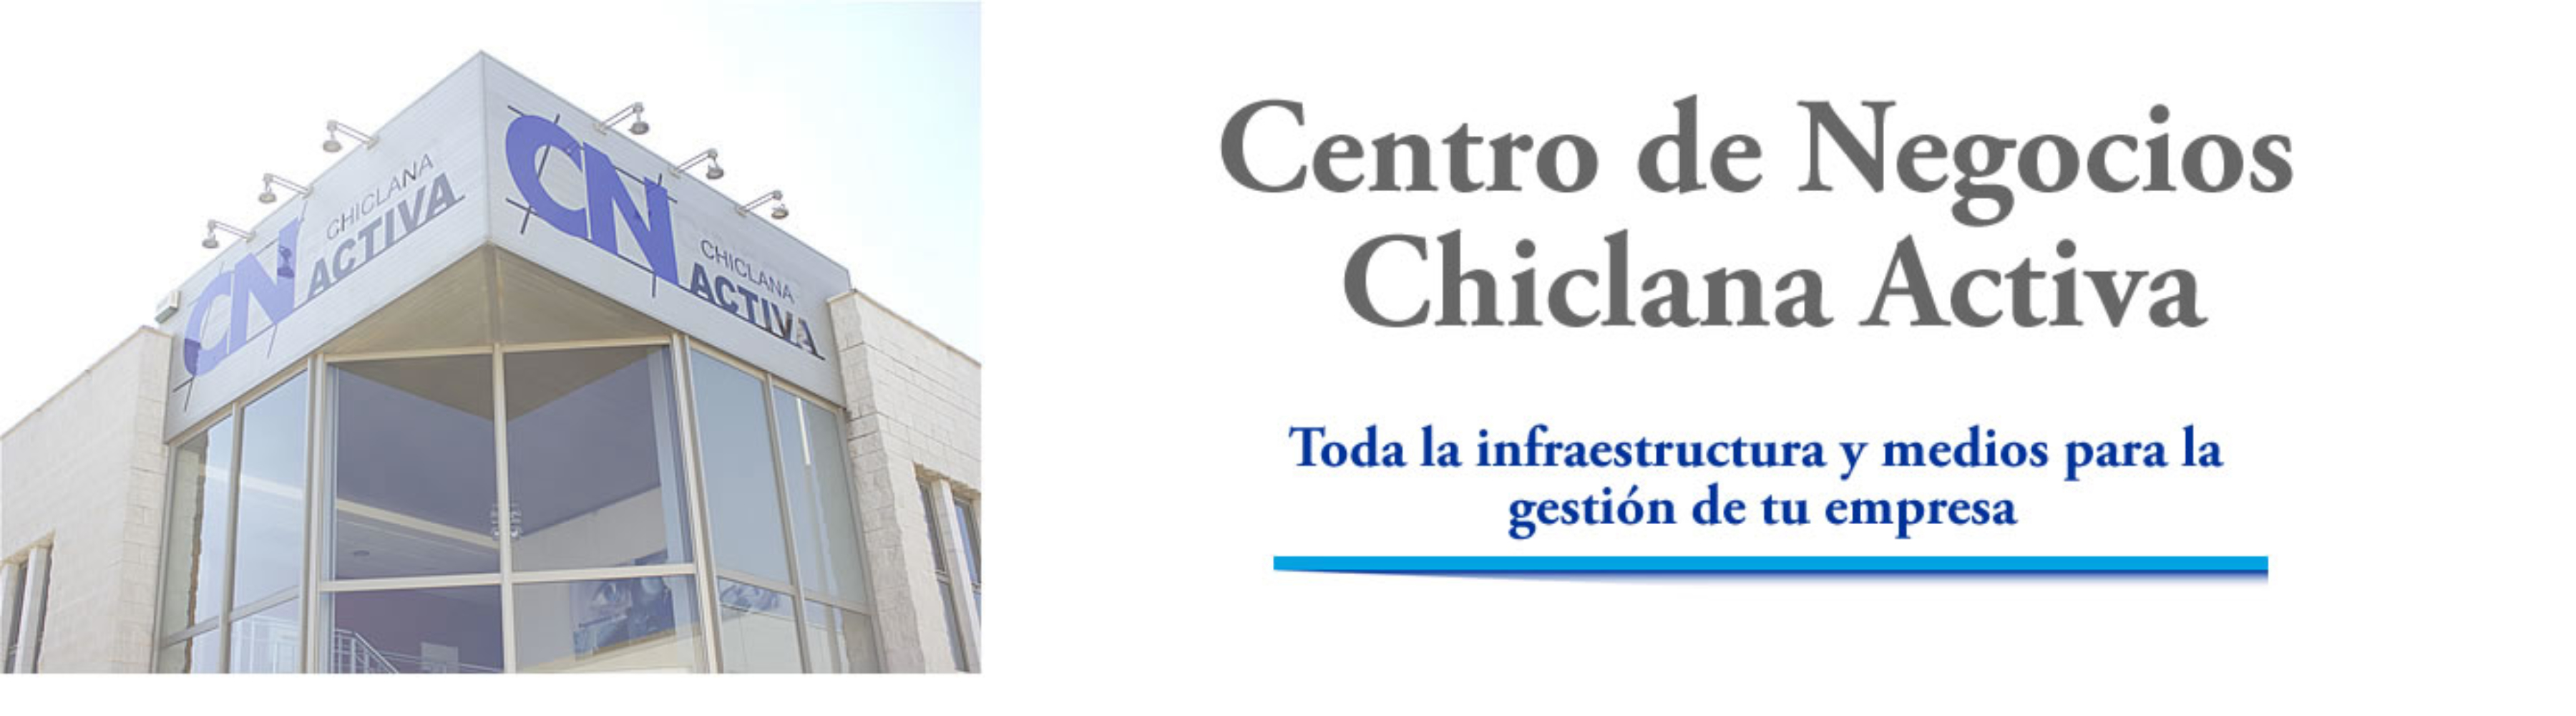 chiclana_activa_slider_1